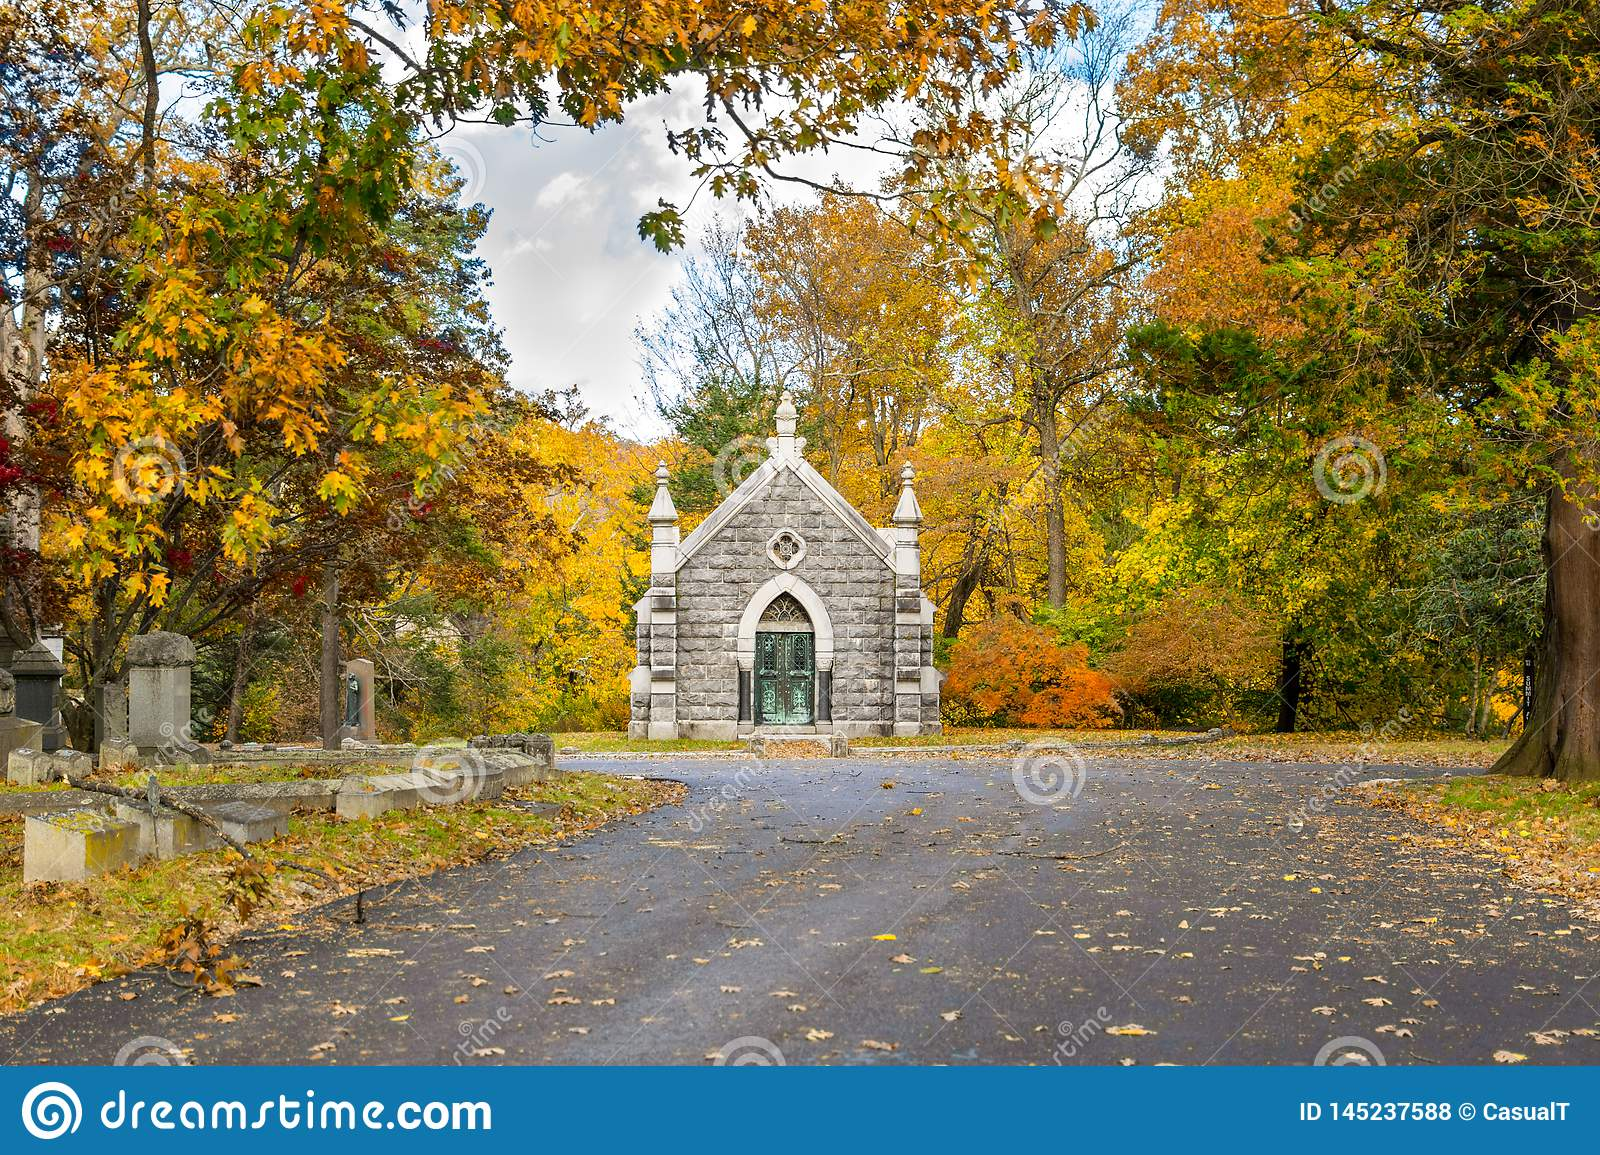 Small mausoleum at Sleepy Hollow Cemetery, surrounded by autumnal fall foliage, Upstate New York, NY, USA